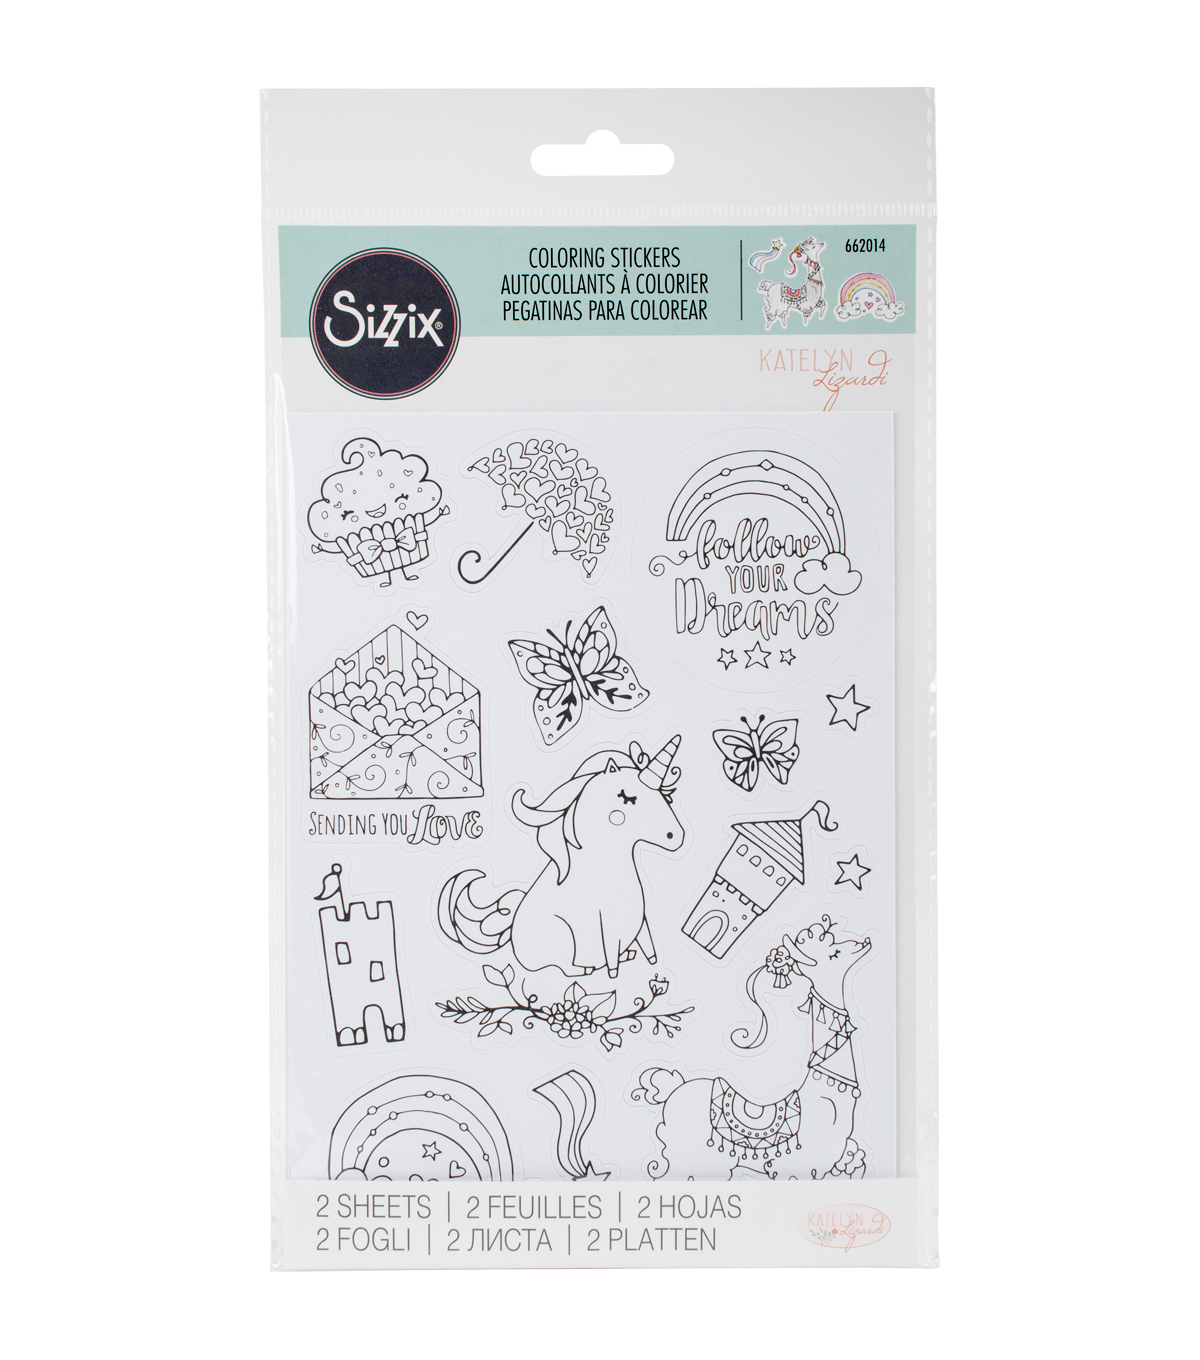 Sizzix® Katelyn Lizardi 2 Pack Coloring Stickers-Follow Your Dreams